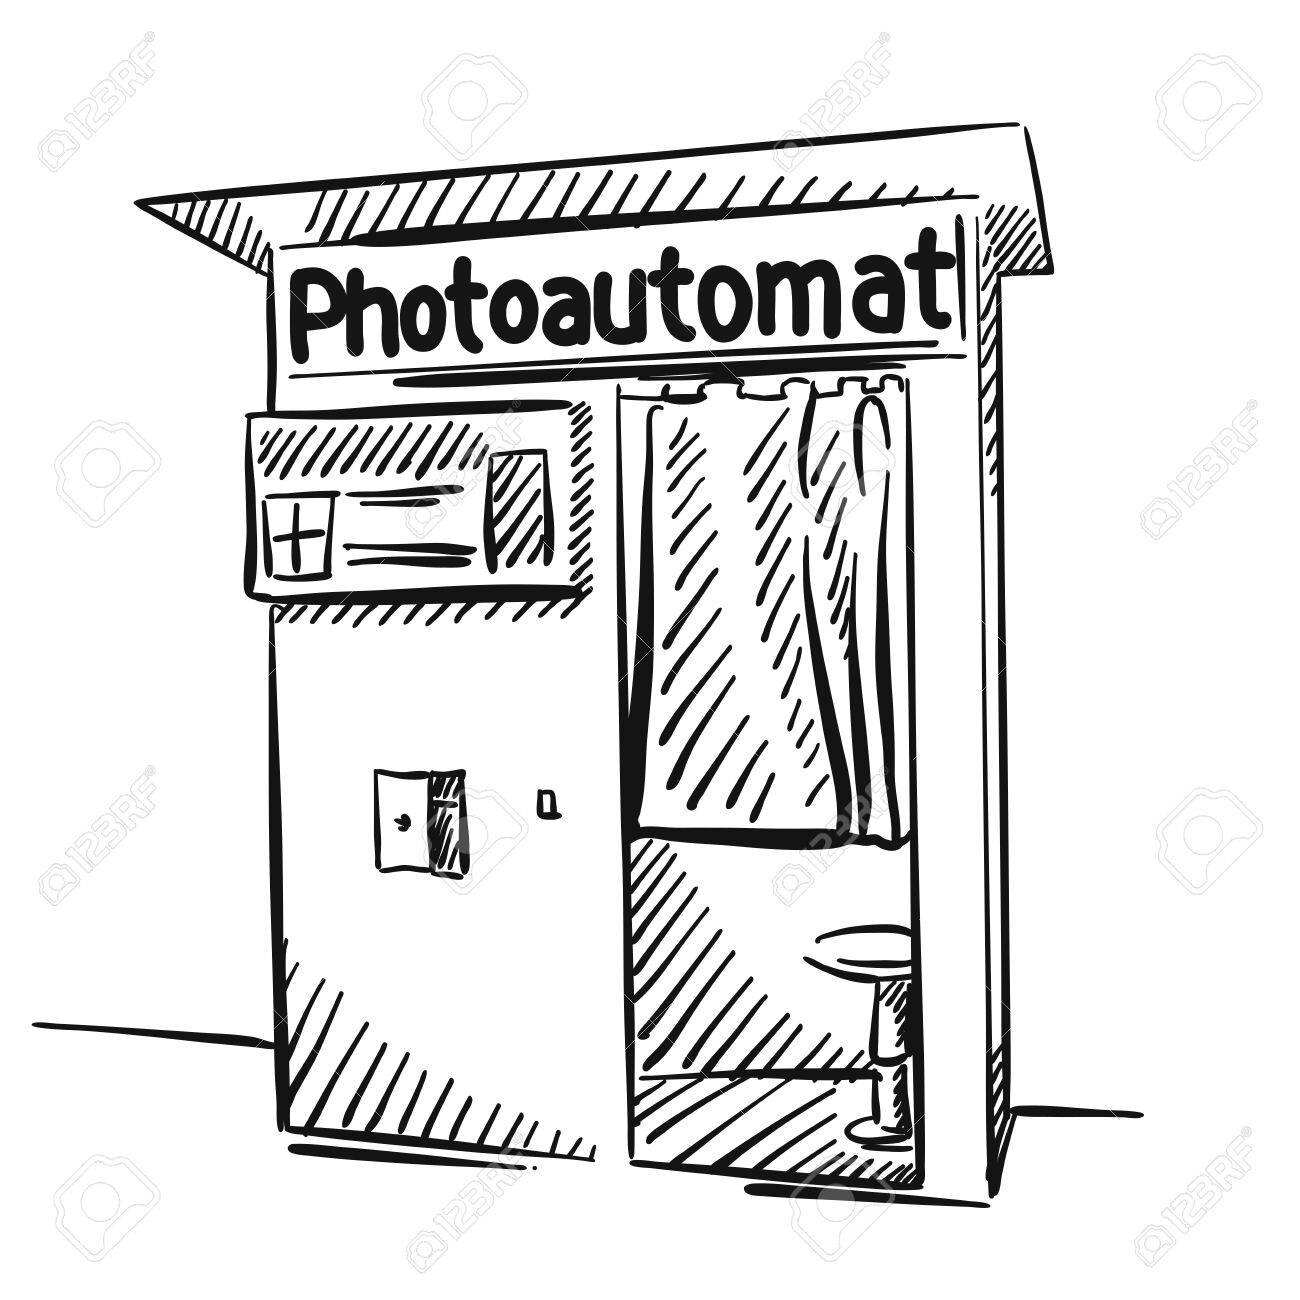 Photo Booth Tricia - Name -Tricia FPhotography experience - 5 YearsPosition - Photo Booth attendantFavourite Music - Pop, Rap, hip/hop, R&BGrew Up In -Aylmer Ontario!Hobbies - Kayaking, dog walking, shopping, craftingOccupation - Constituency Assistant